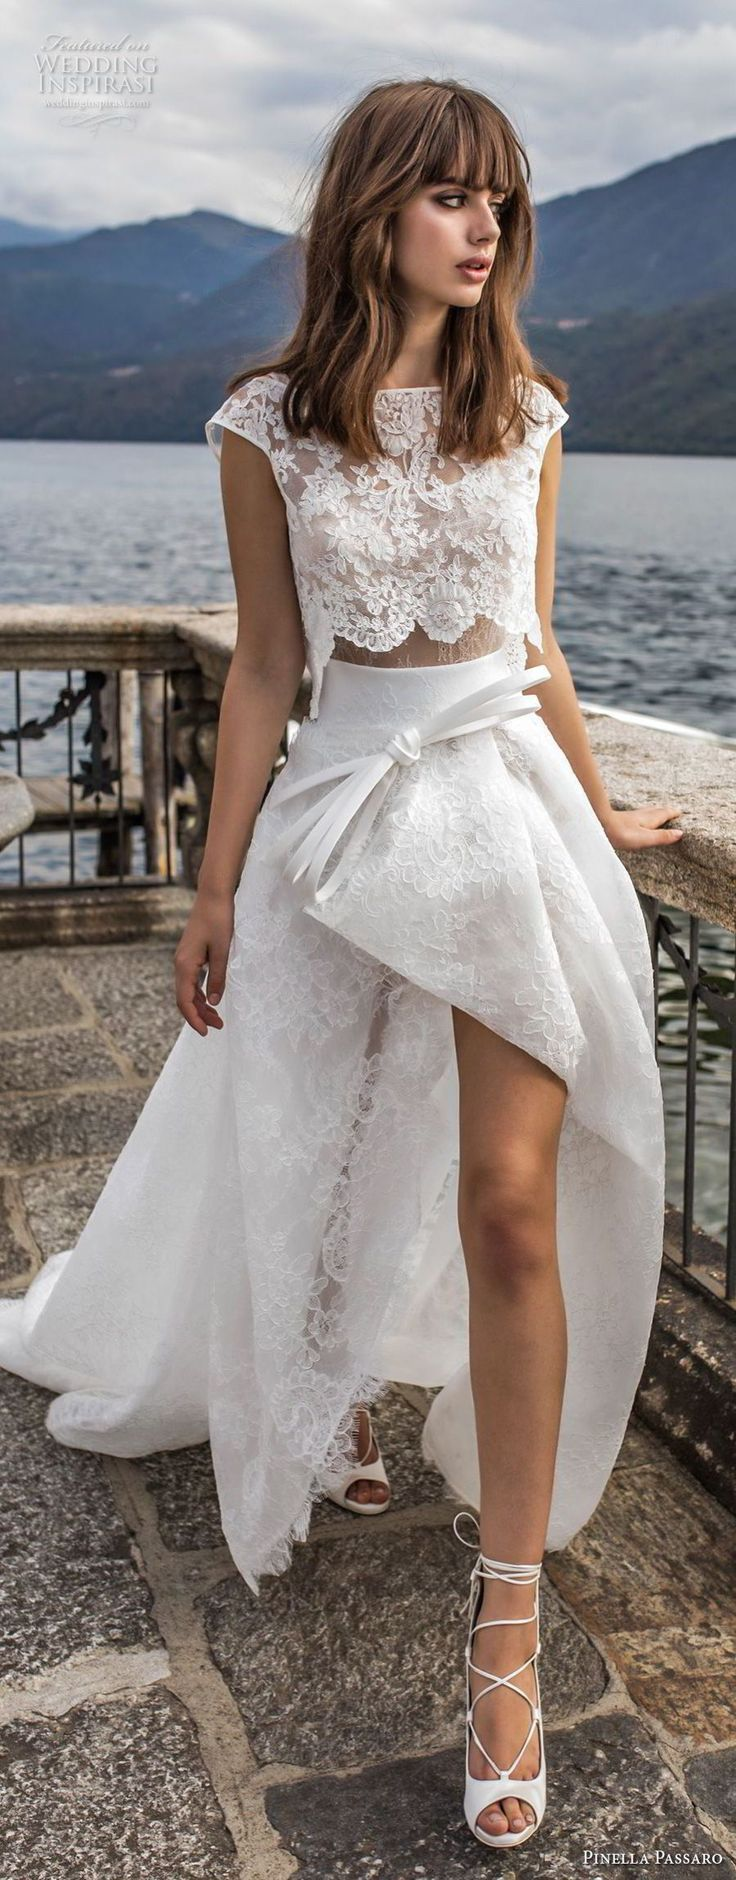 Pinella passaro wedding dresses wedding dress pinterest